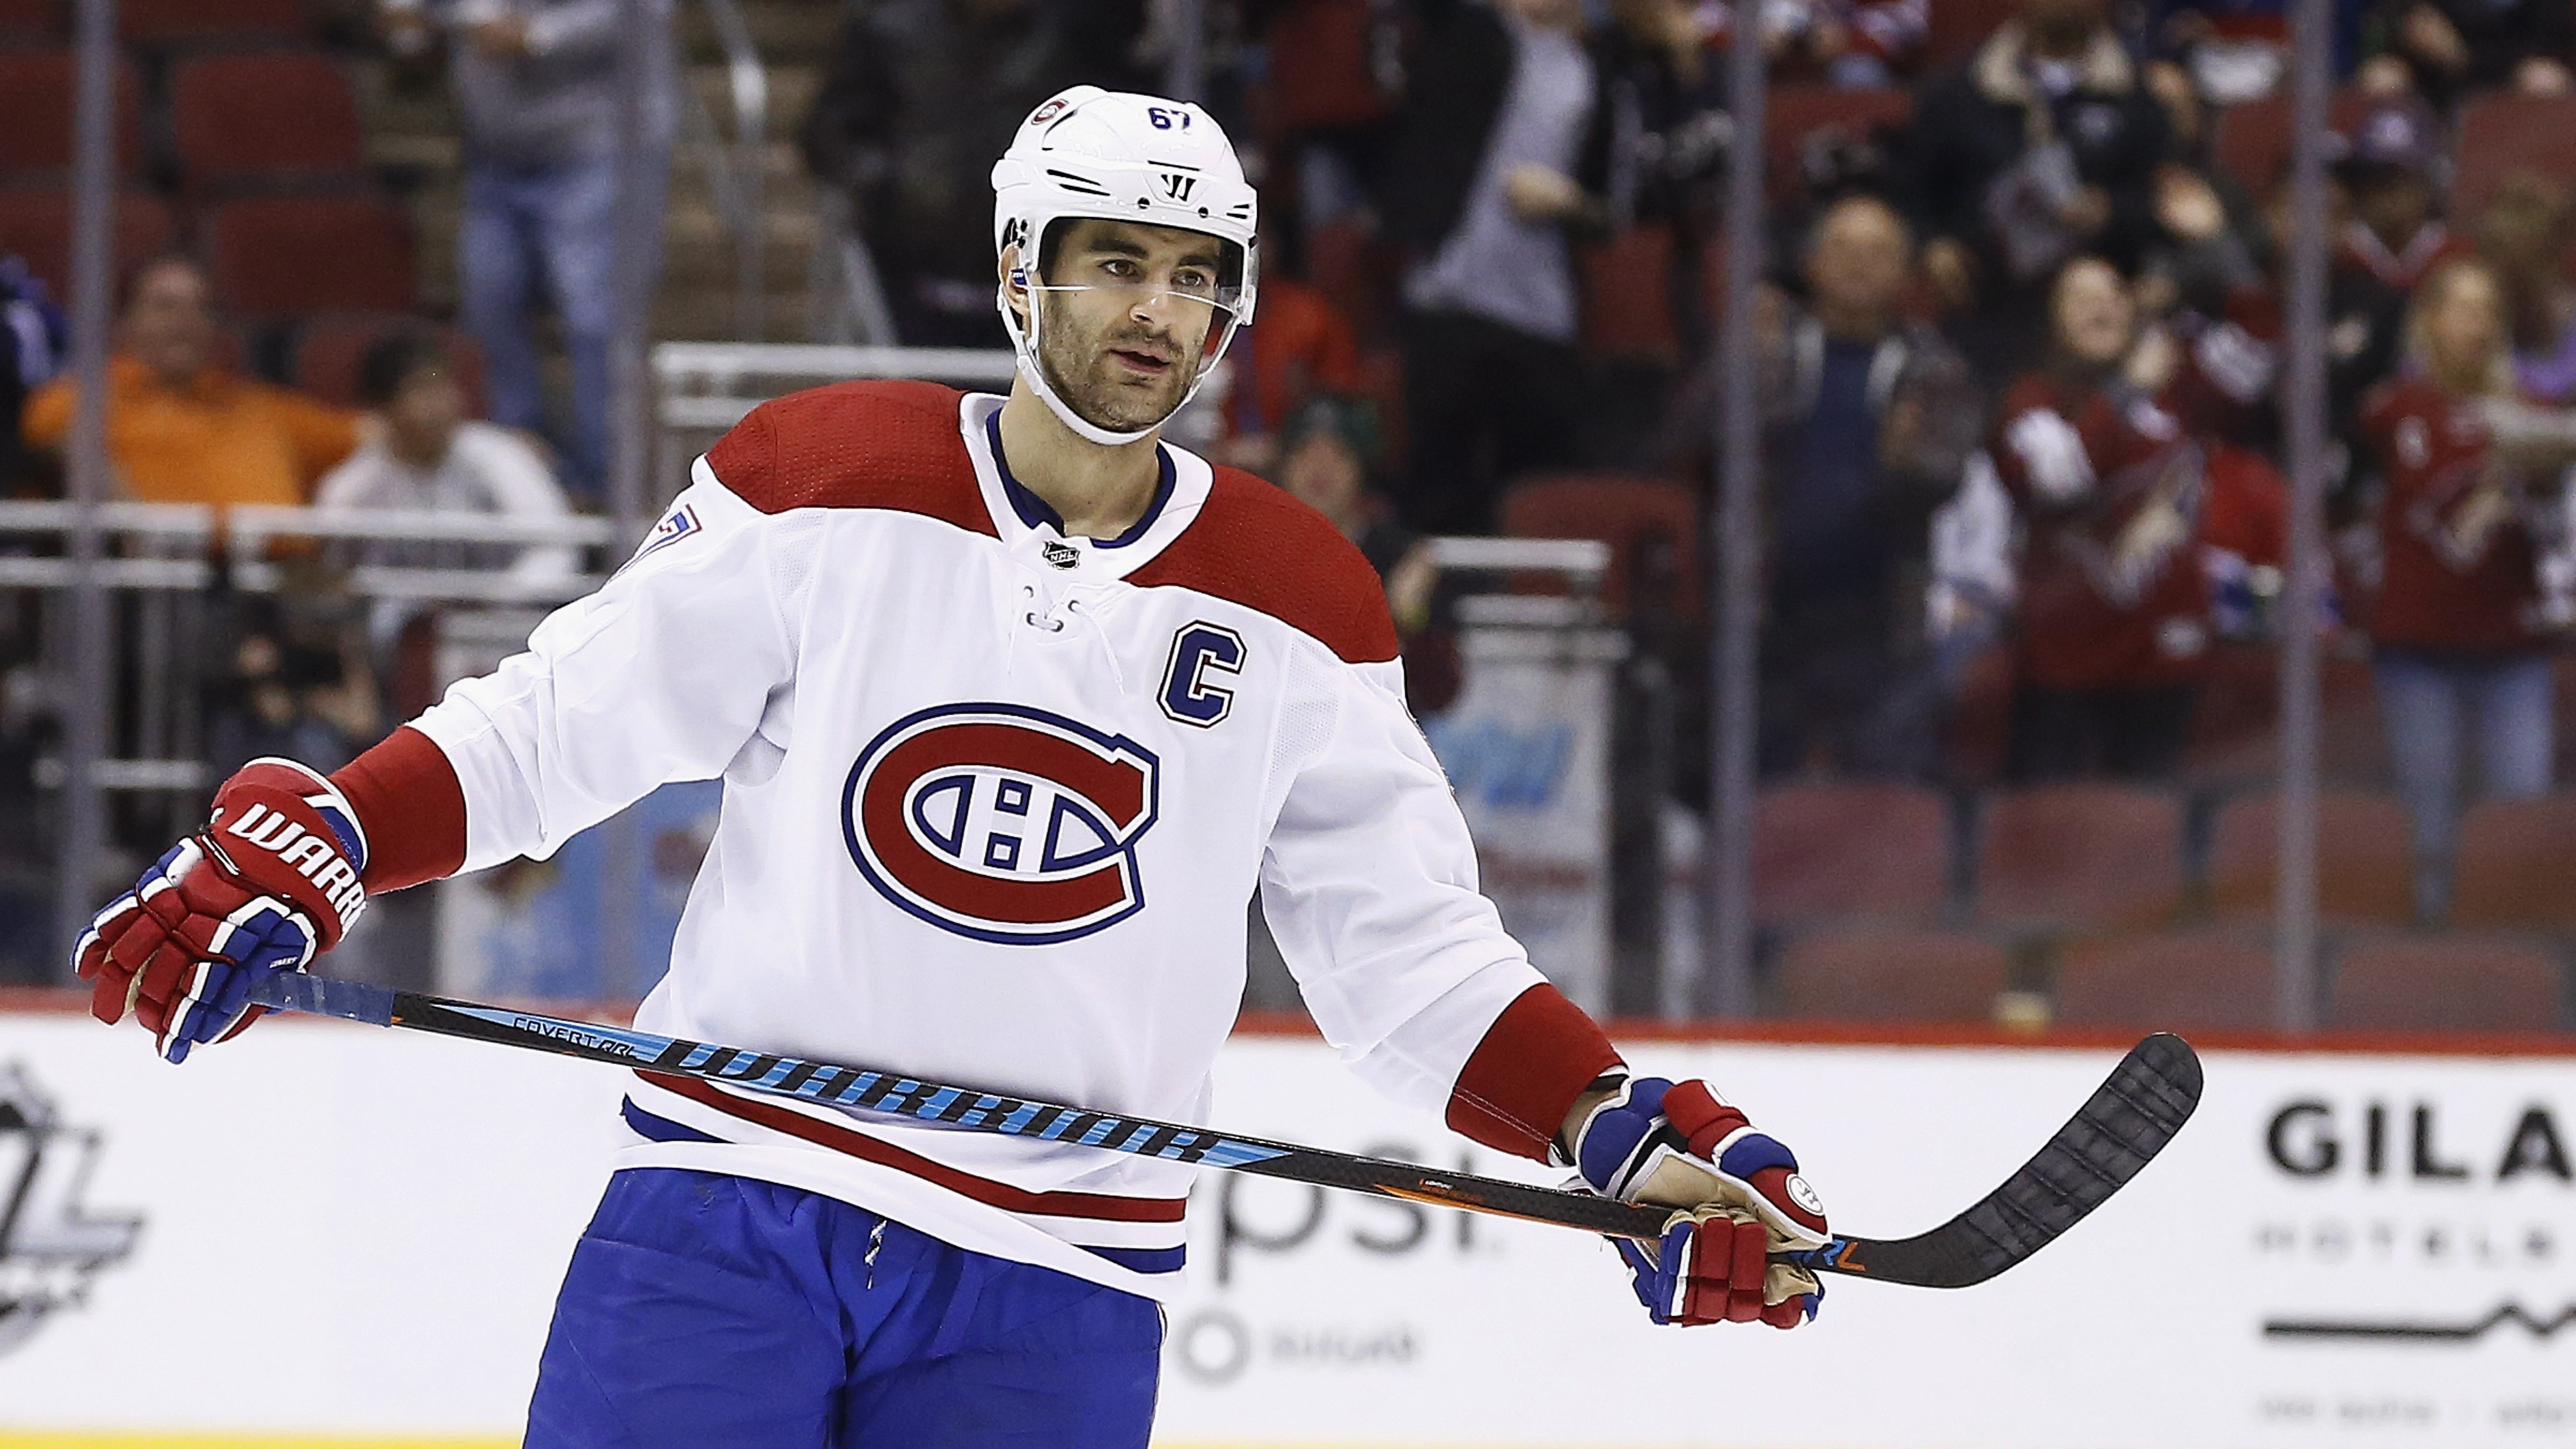 Vegas signs Max Pacioretty to extension after trade